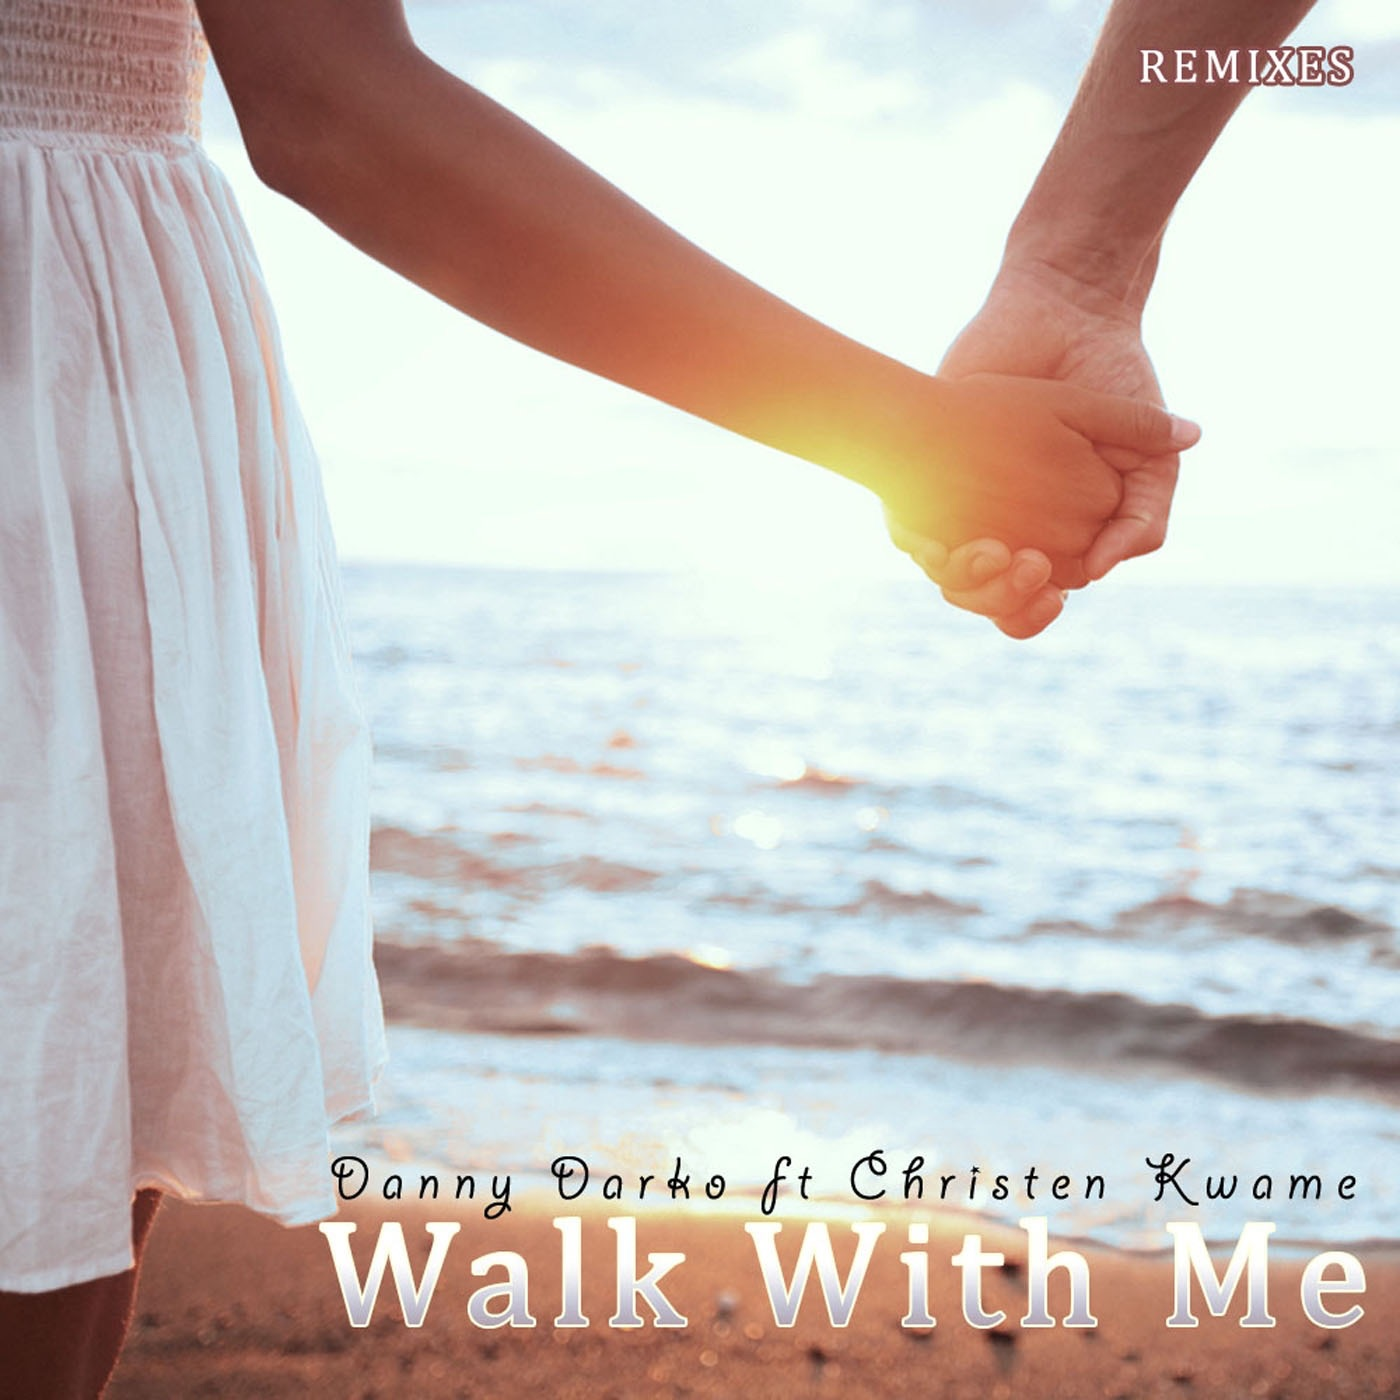 Walk With Me Remixes Part 2 (feat. Christen Kwame) - EP